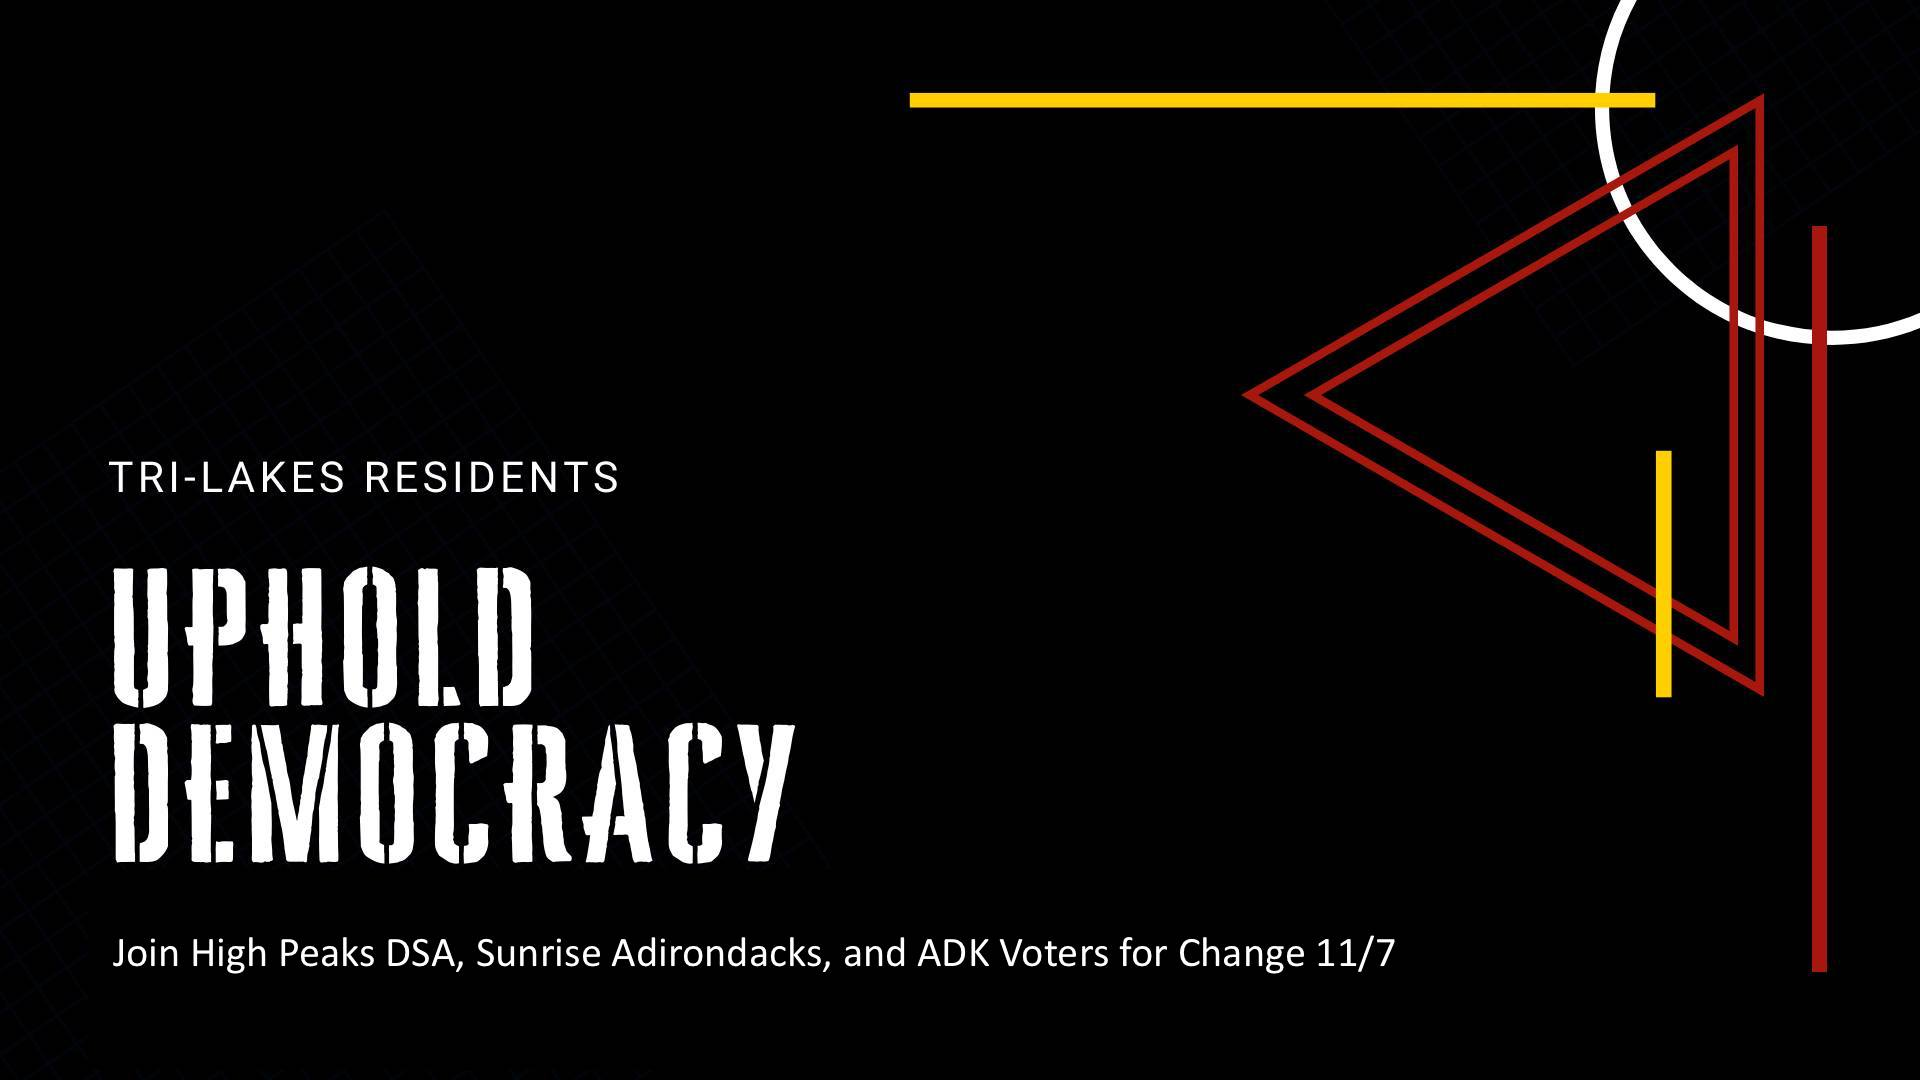 uphold democracy event